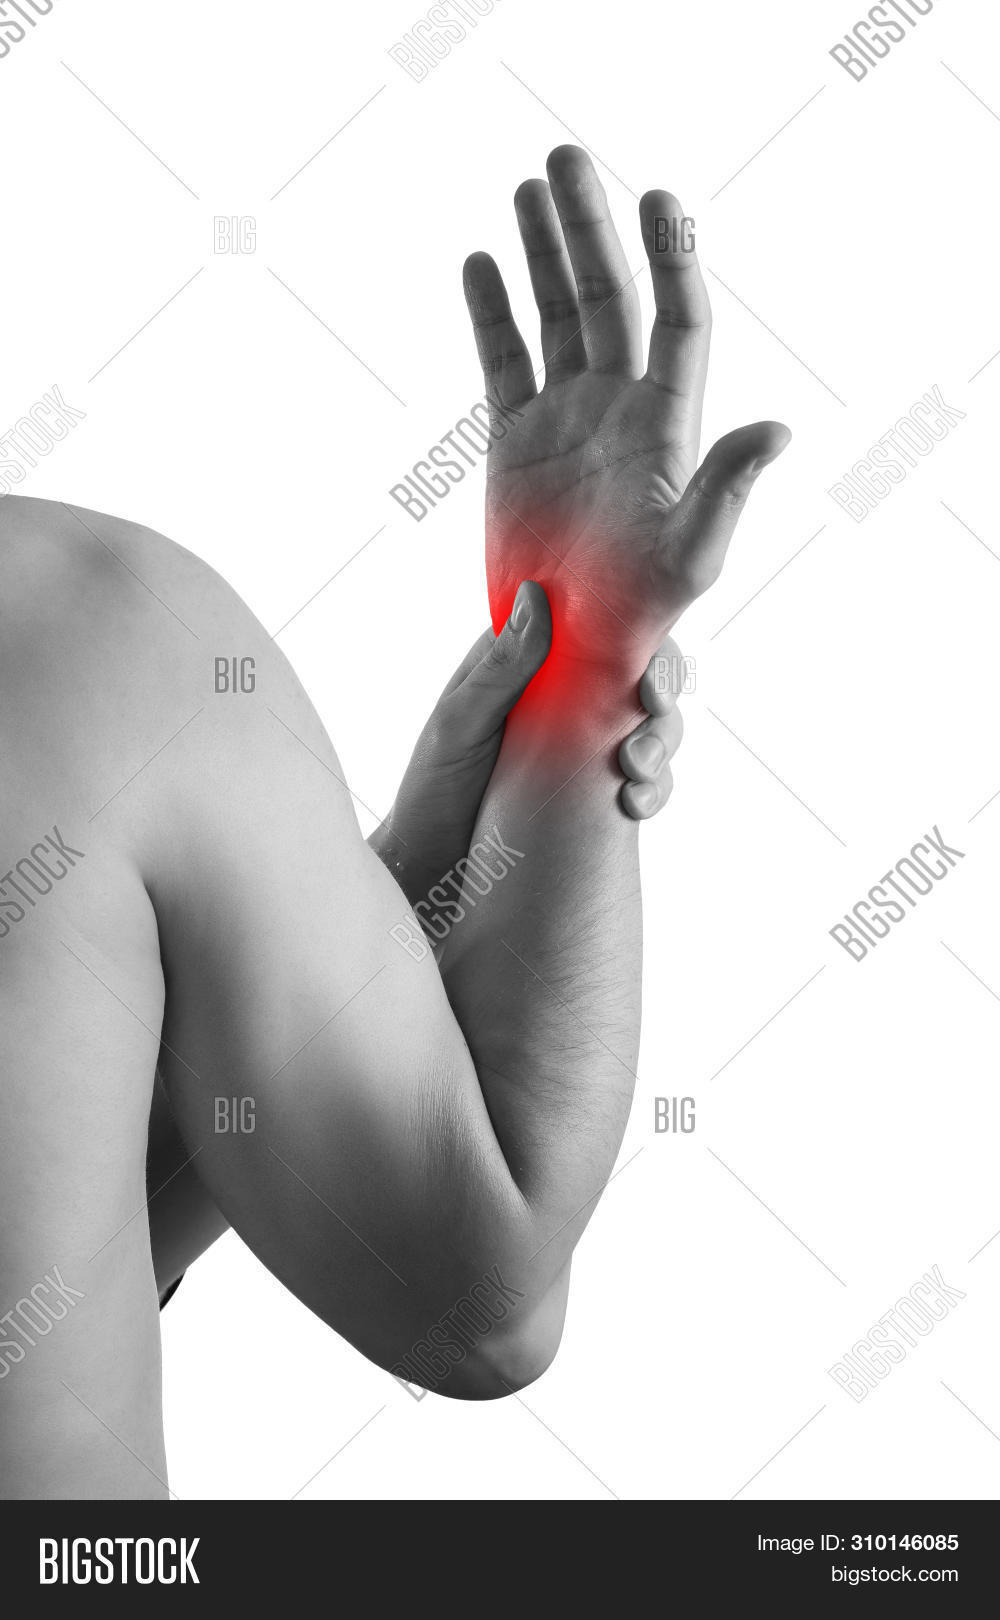 ache,arthritis,back,backache,backbone,body,cervical,cervicalgia,chiropract,chiropractor,chronic,disease,hand,having,health,human,hurt,illness,inflammation,injury,isolated,kyphosis,male,man,massage,massaging,muscle,muscular,neck,neuralgia,pain,painful,relief,rheumatic,rheumatism,sciatica,scoliosis,shoulder,sickness,soreness,spine,sports,strain,suffering,tired,treatment,vertebra,whiplash,white,workout